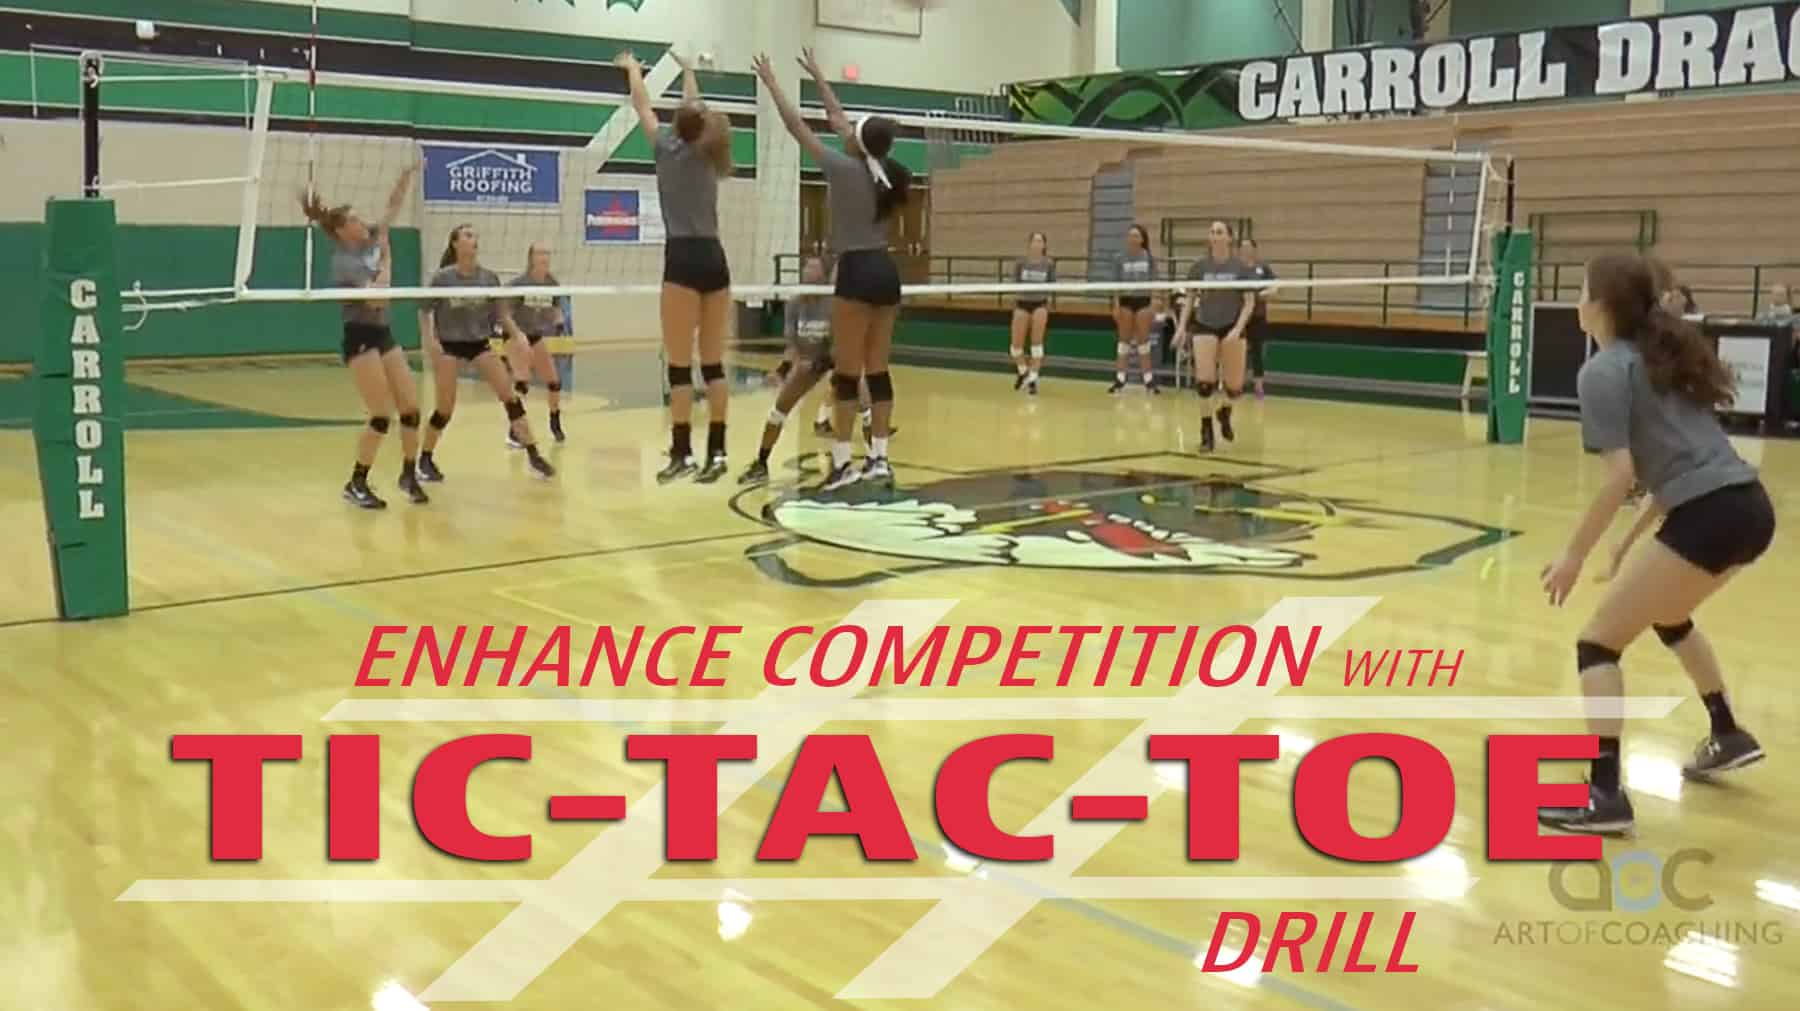 Enhance Competition With Tic Tac Toe Drill